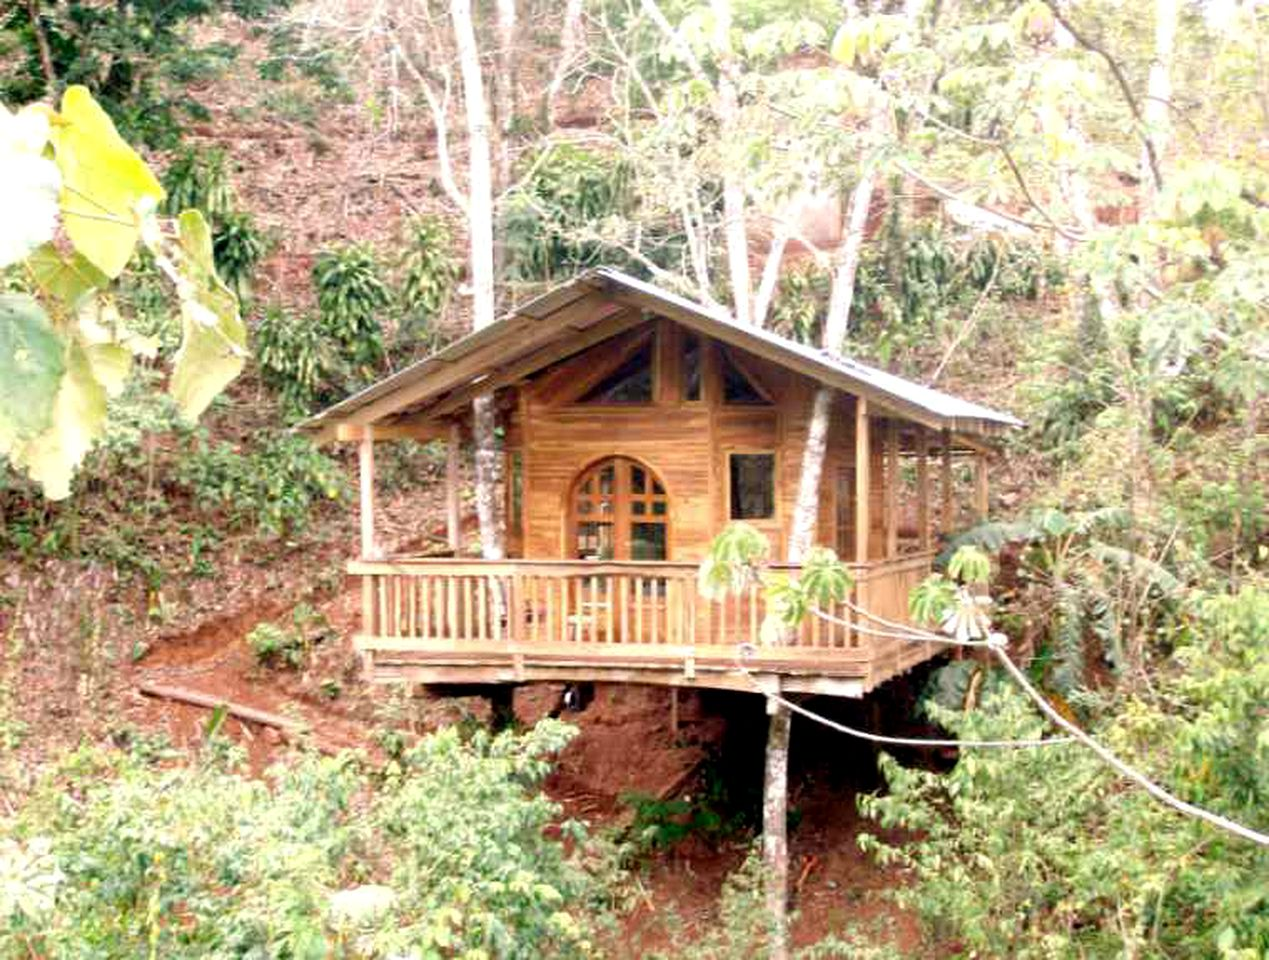 Forested Tree House on Permaculture Farm near Coyote Beach, Costa Rica